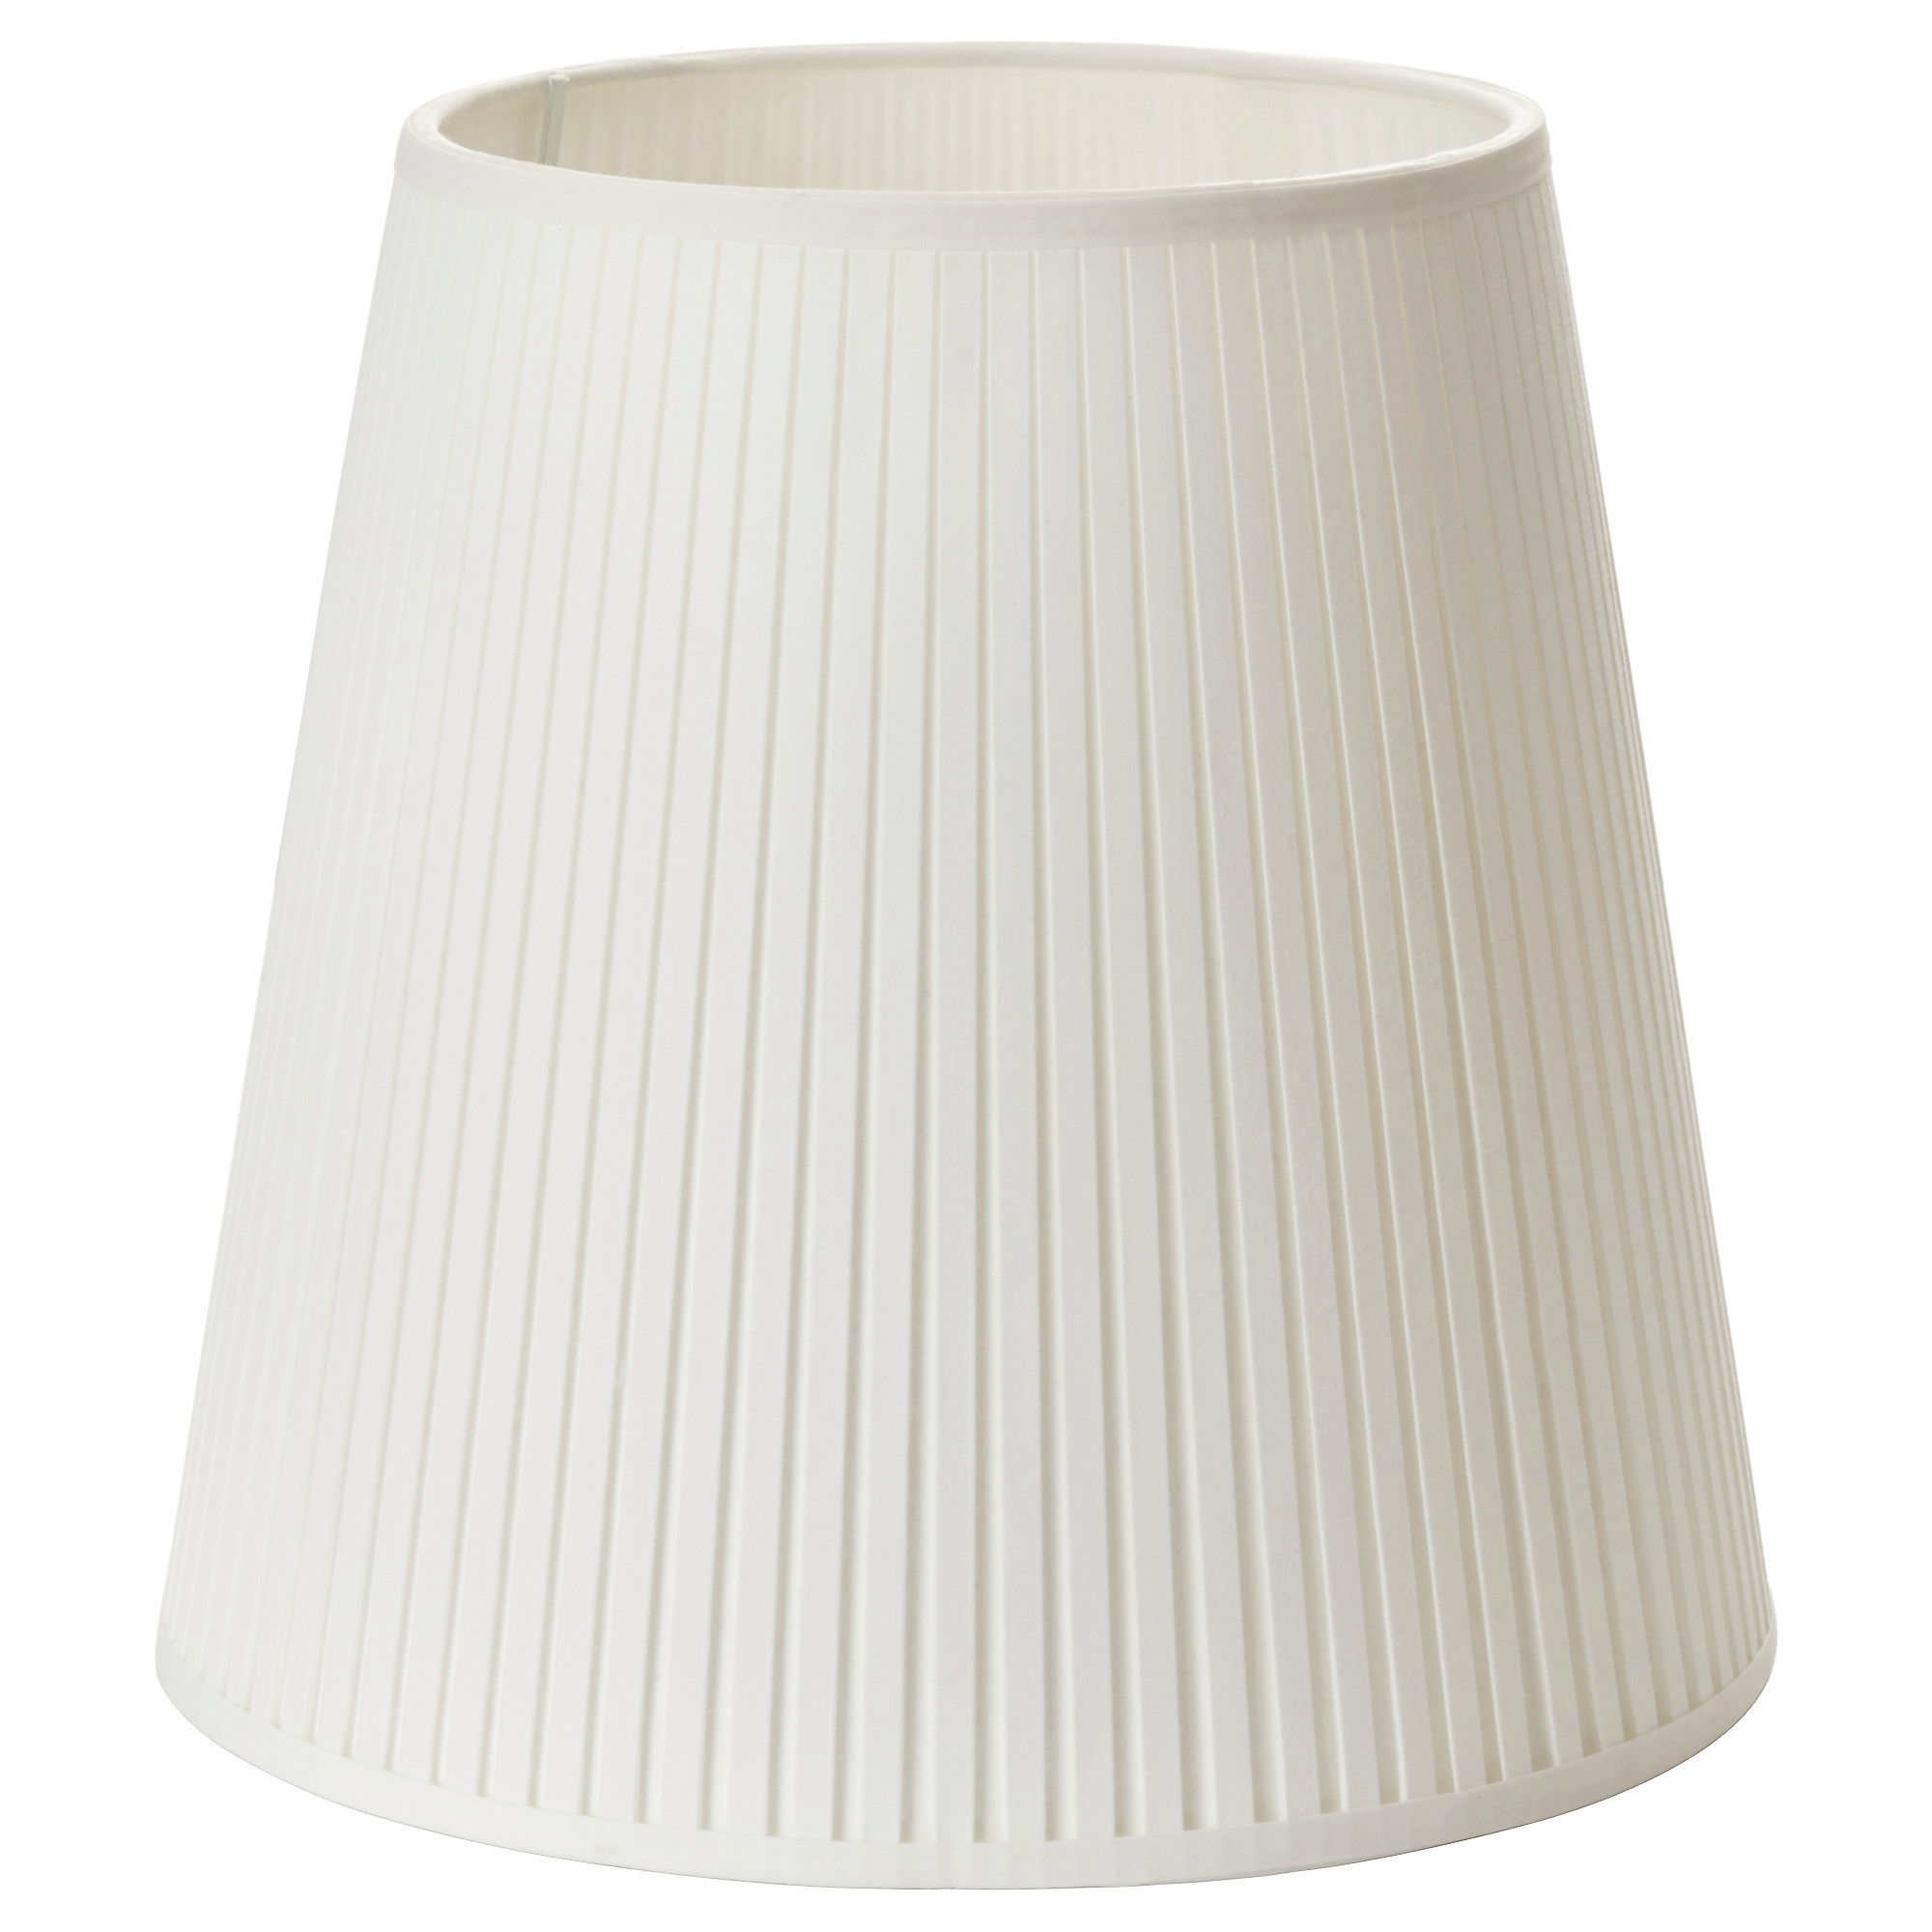 Lamp Shades & Bases - IKEA:EKÅS lamp shade, off-white Height: 13